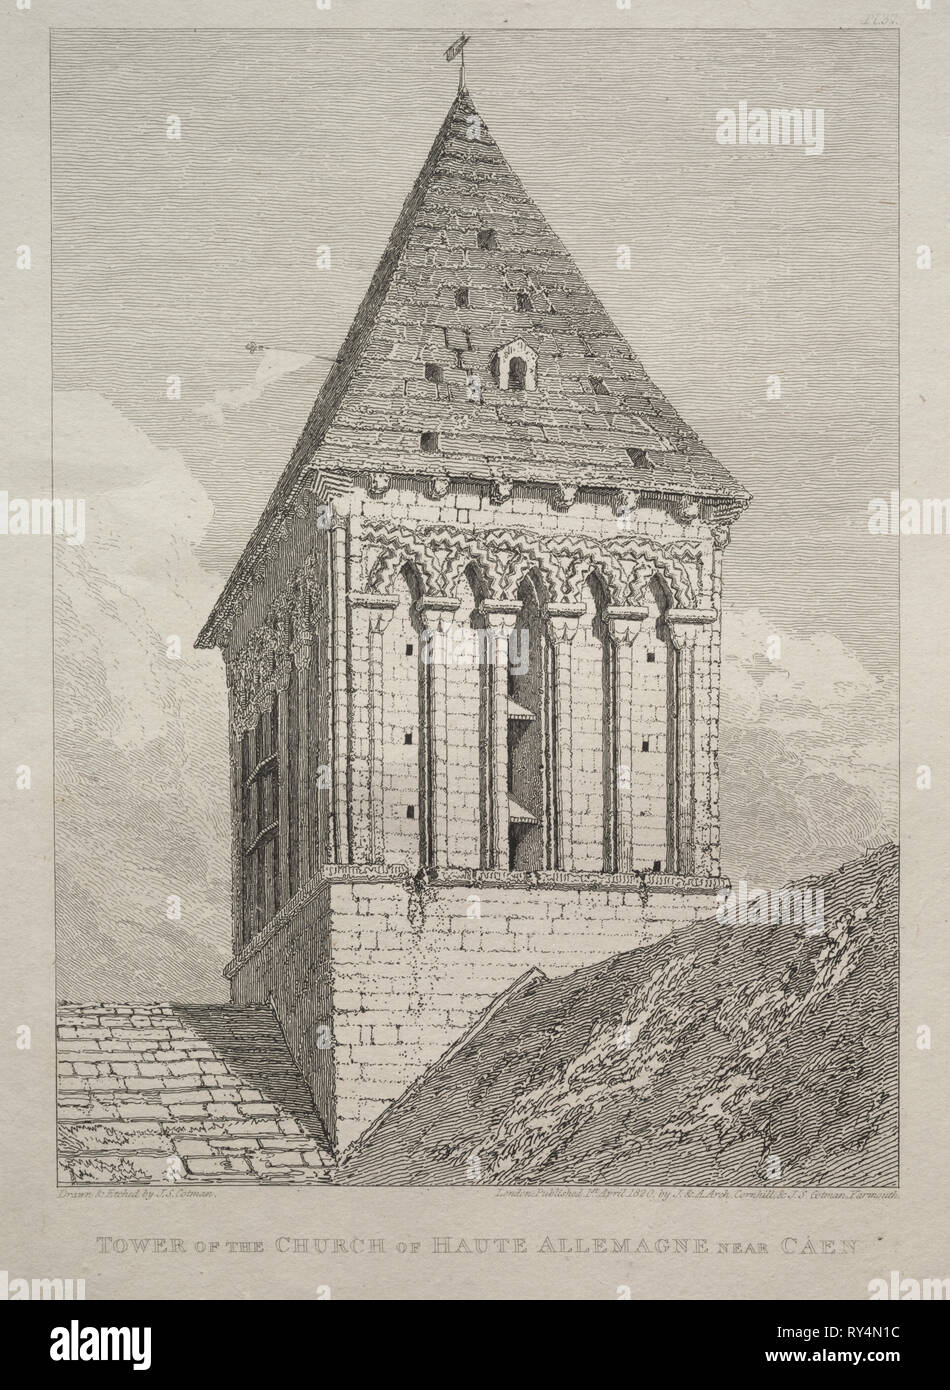 Tower of the Church of Haute Allemagne near Caen. John Sell Cotman (British, 1782-1842). Etching - Stock Image